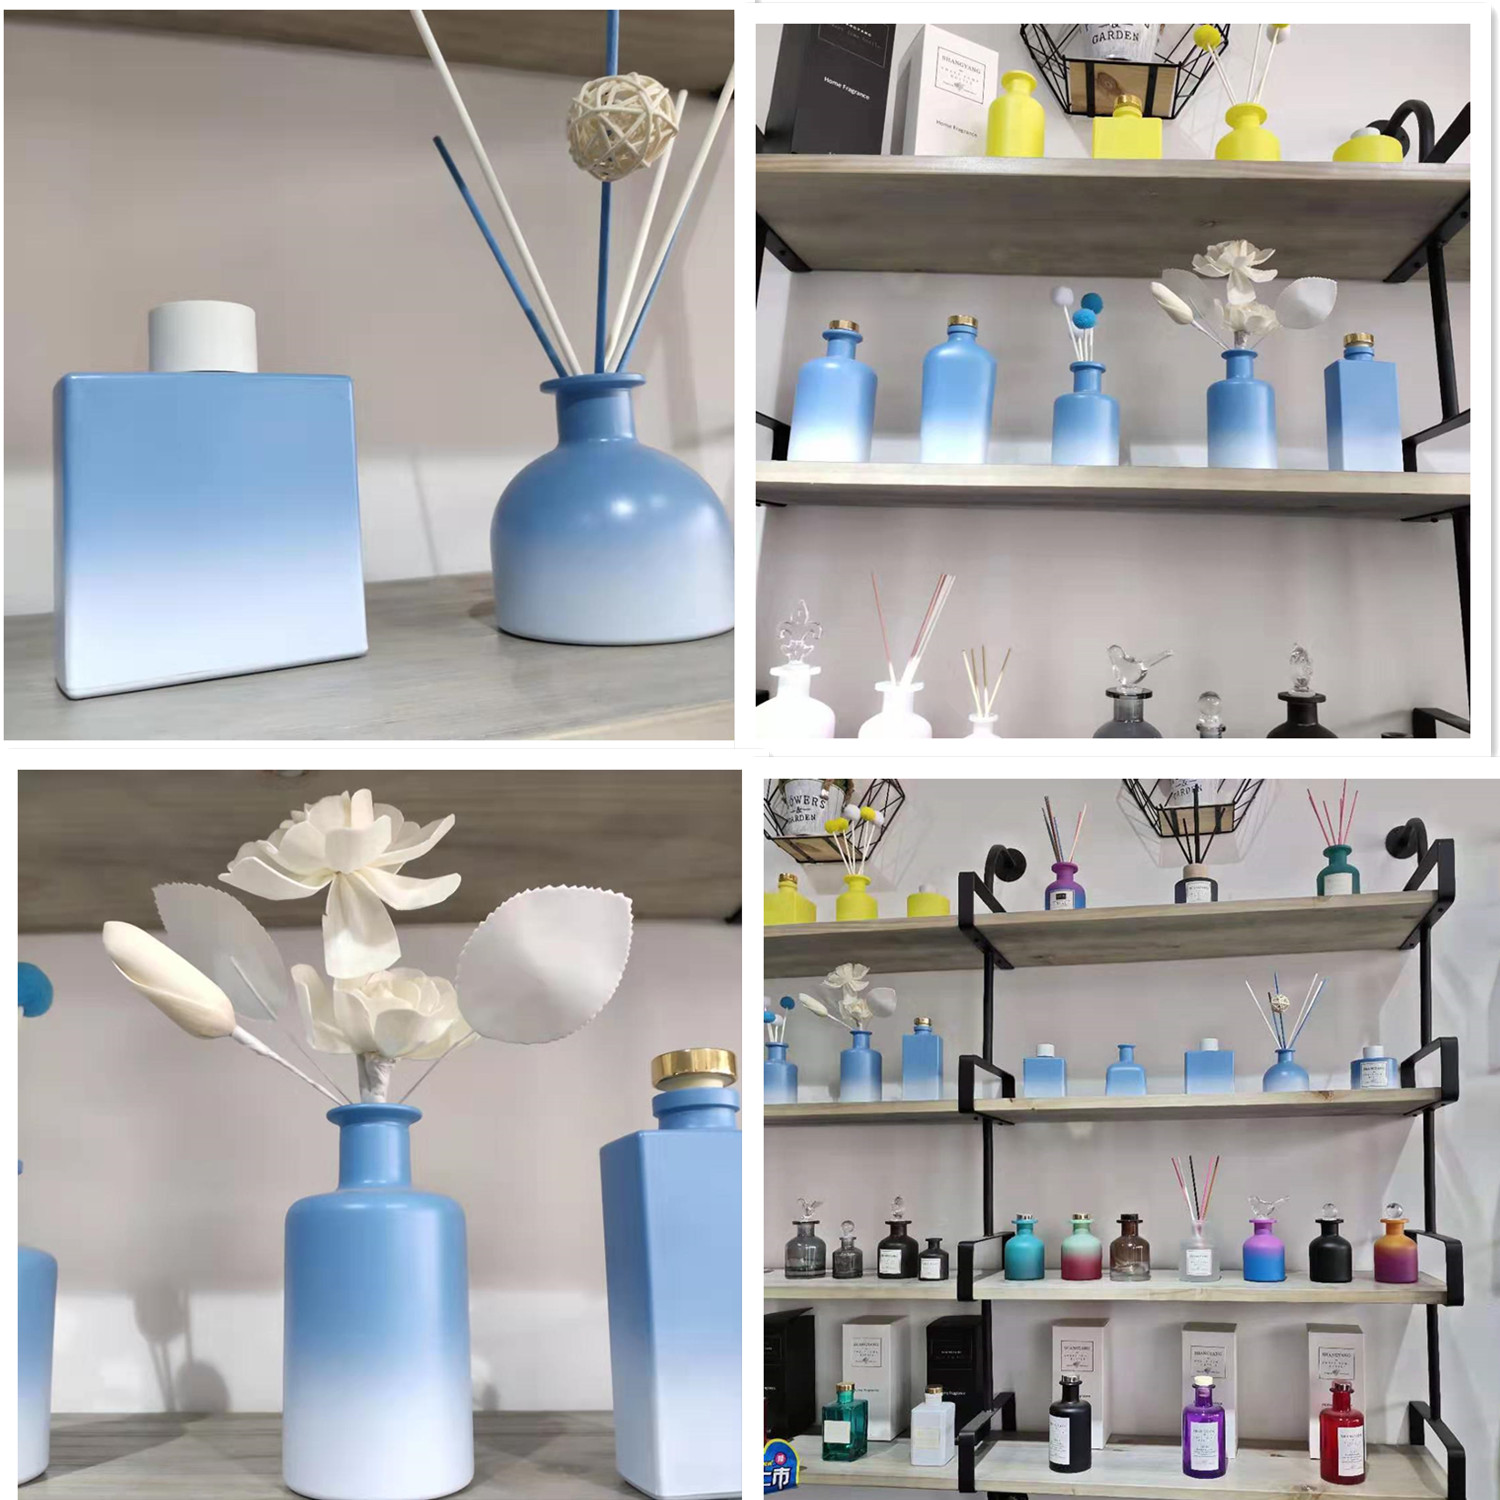 200ml OEM colorful glass bottles personal care essential scent oil use aroma diffuser bottles